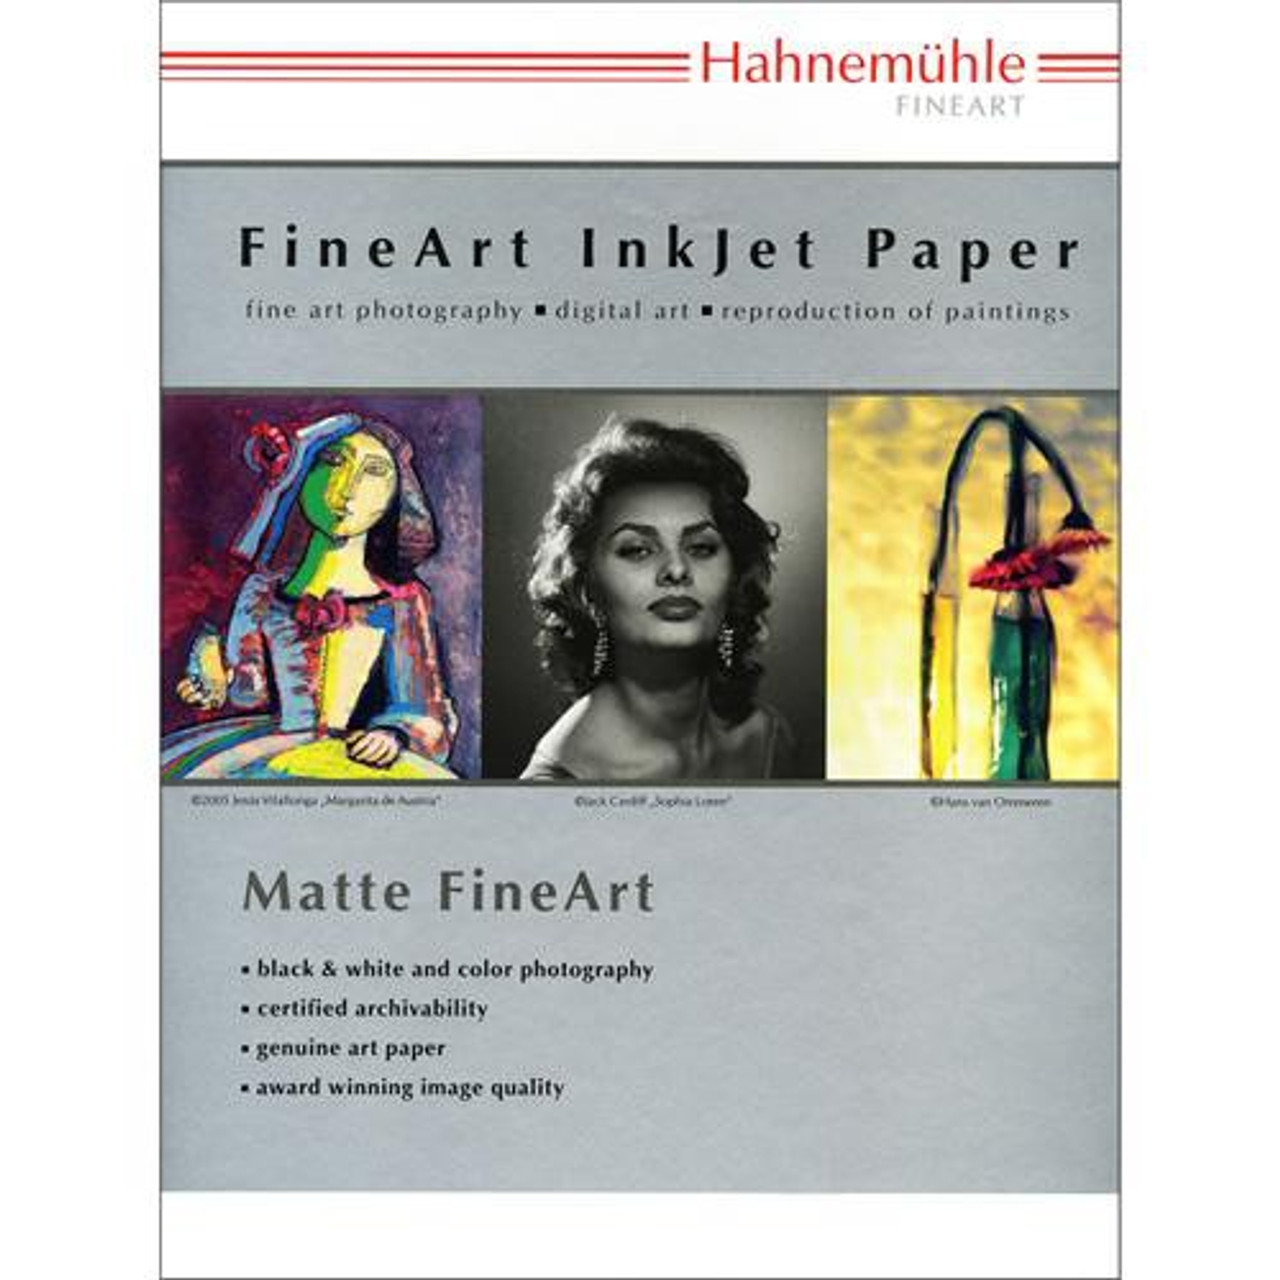 """Hahnemühle Photo Rag 308 Matte FineArt Photo Cards (4 x 6"""", 30 Cards)"""